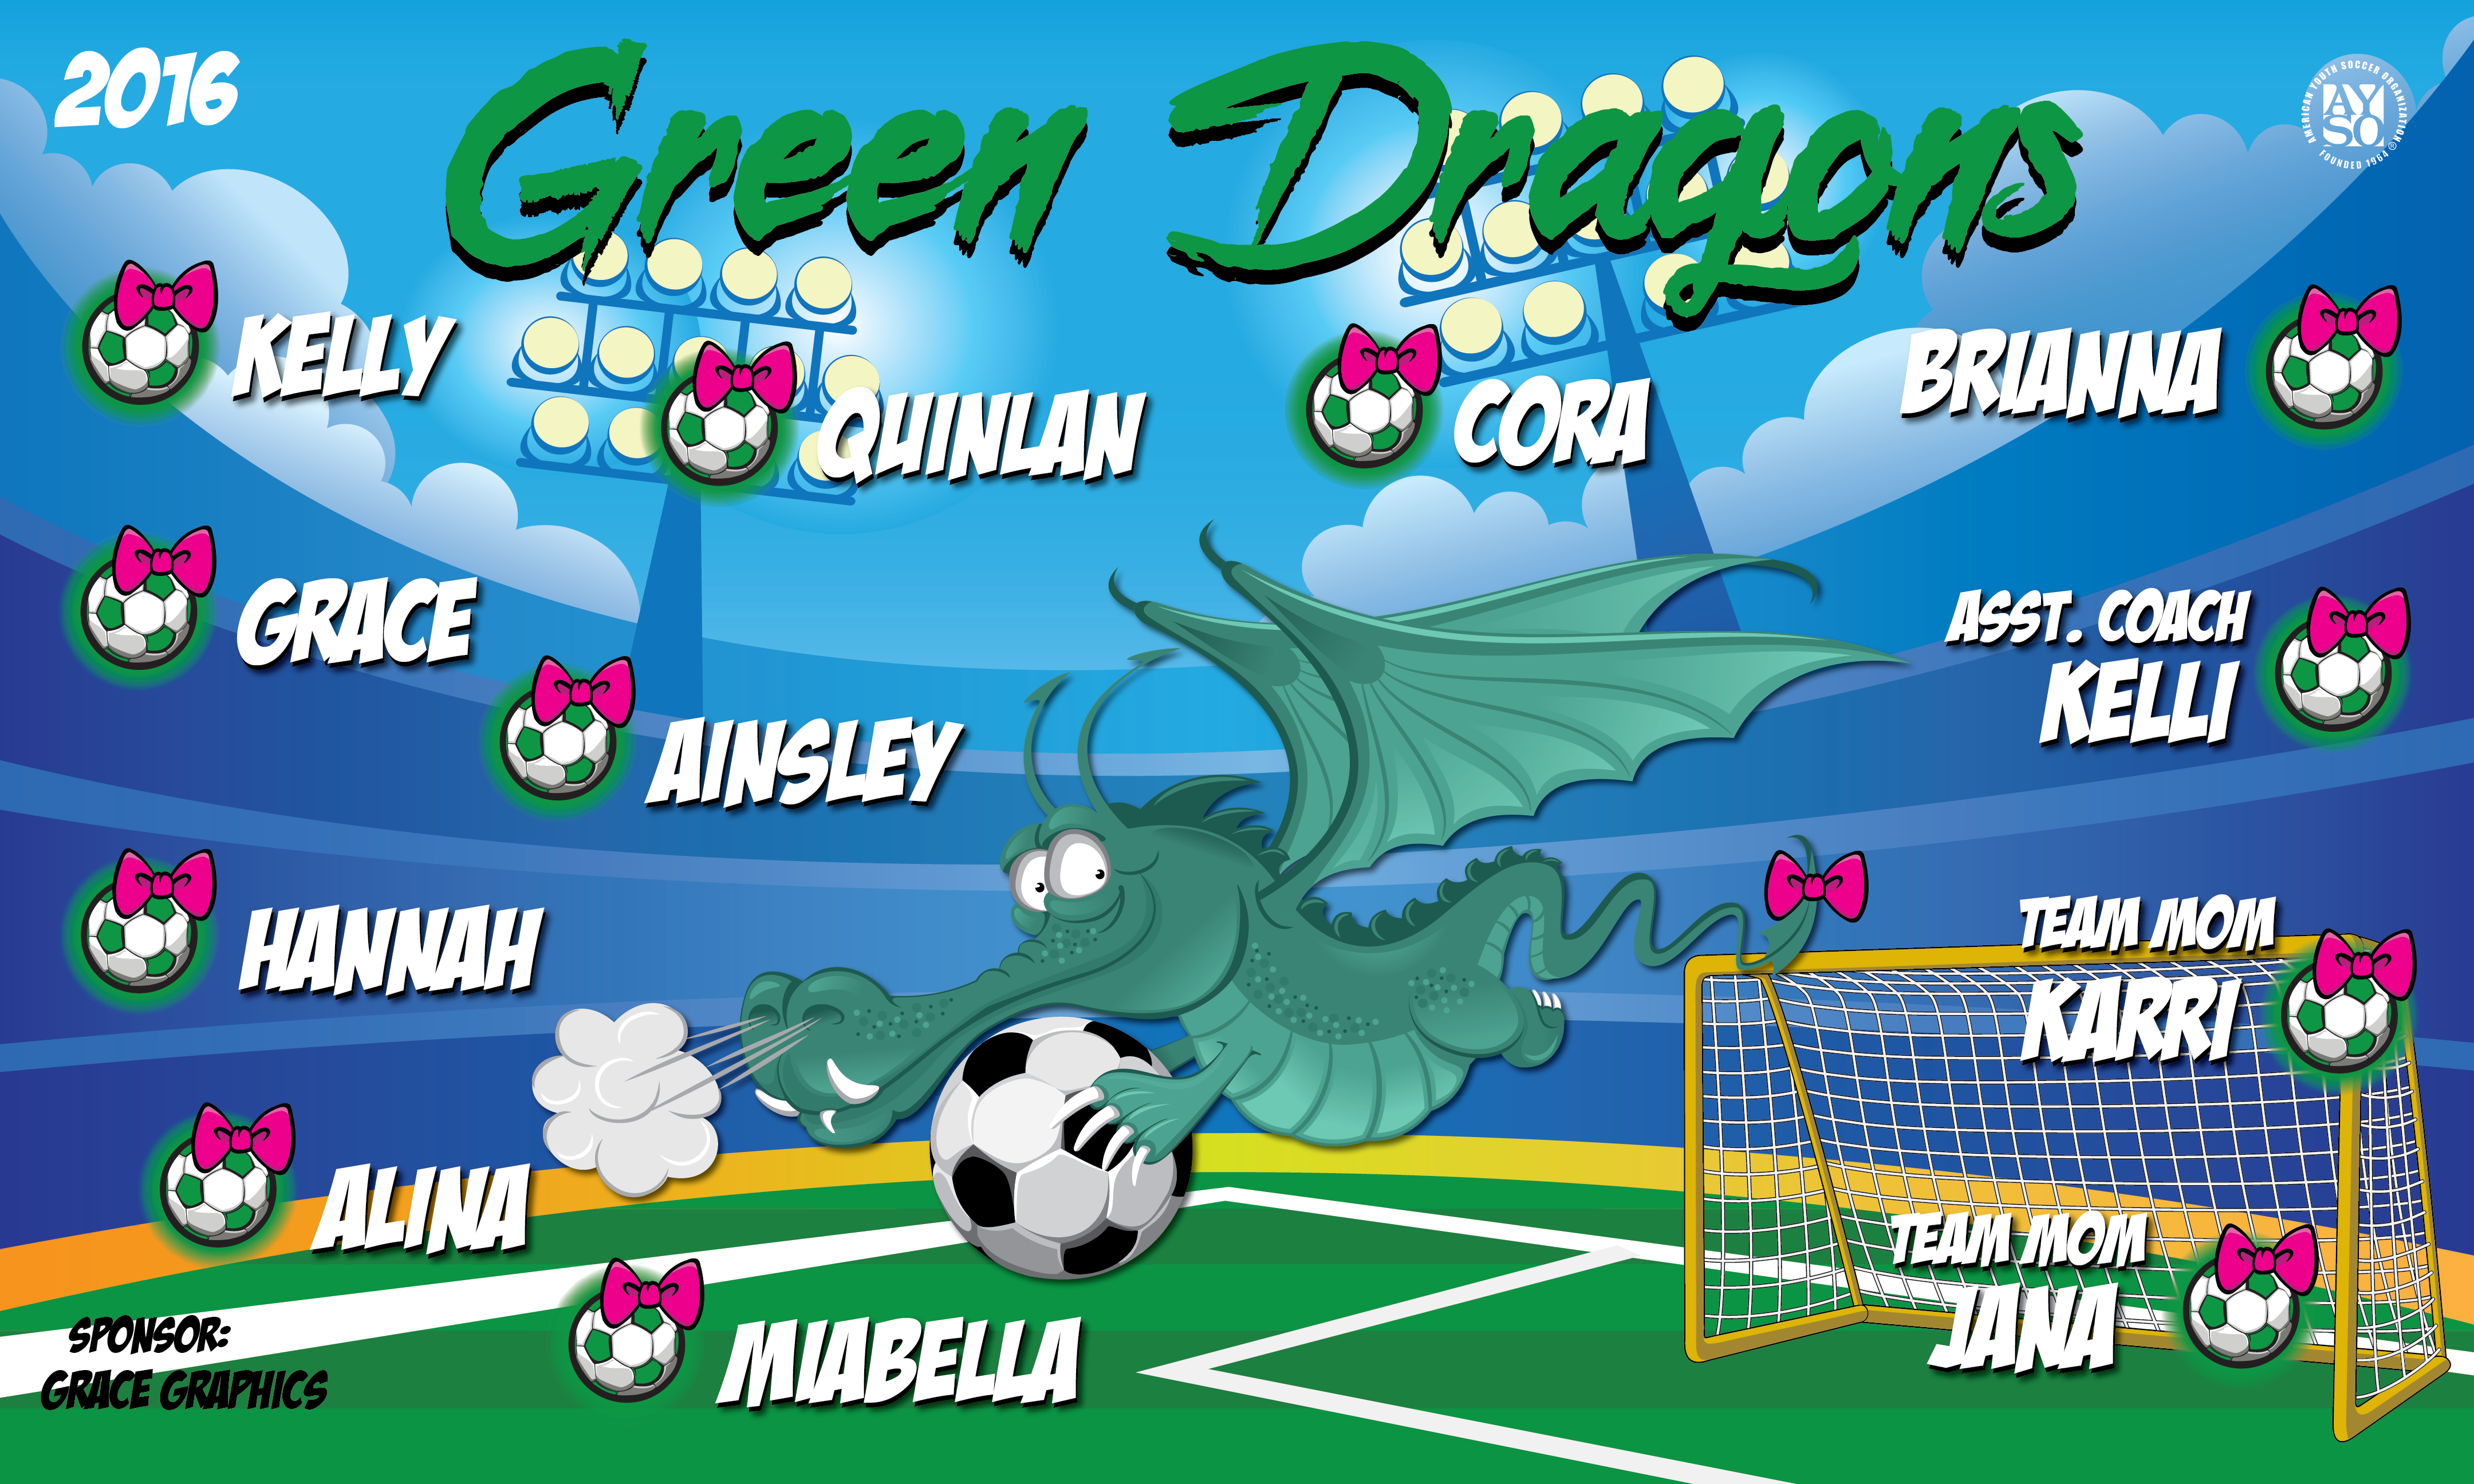 Green Dragons Banners Industrial Training Banners